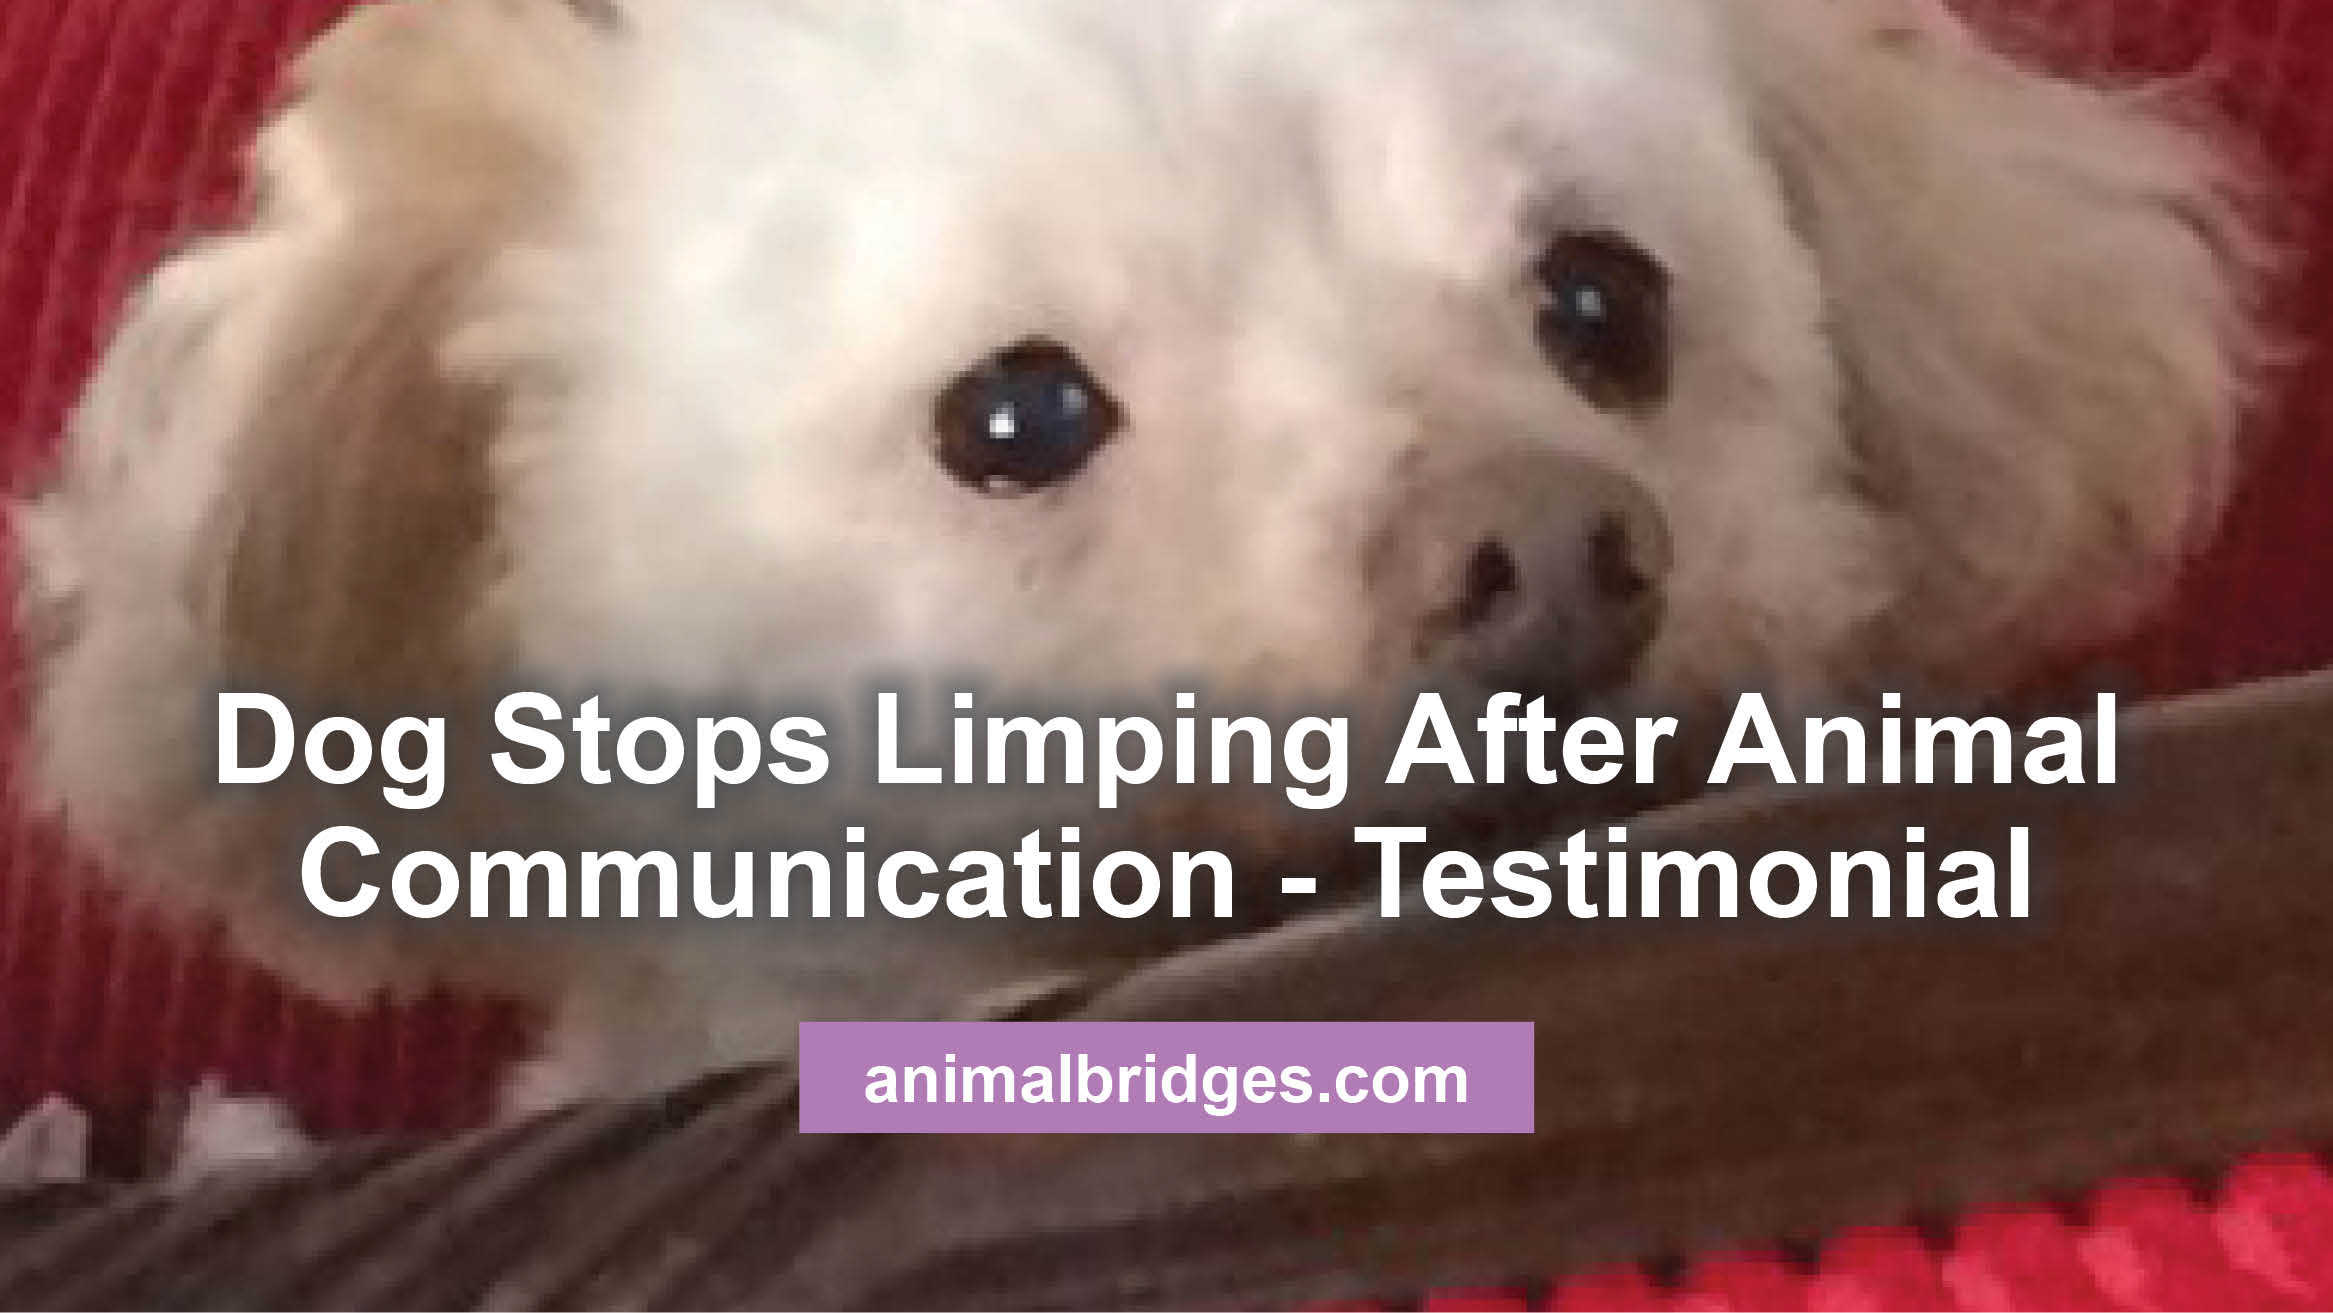 Genial Dog Ss Limping After Animal Communication Testimonial Dog Ss Limping After Animal Communication Testimonial My Dog Is Limping What Could It Be My Dog Is Limping What Can I Give Him bark post My Dog Is Limping